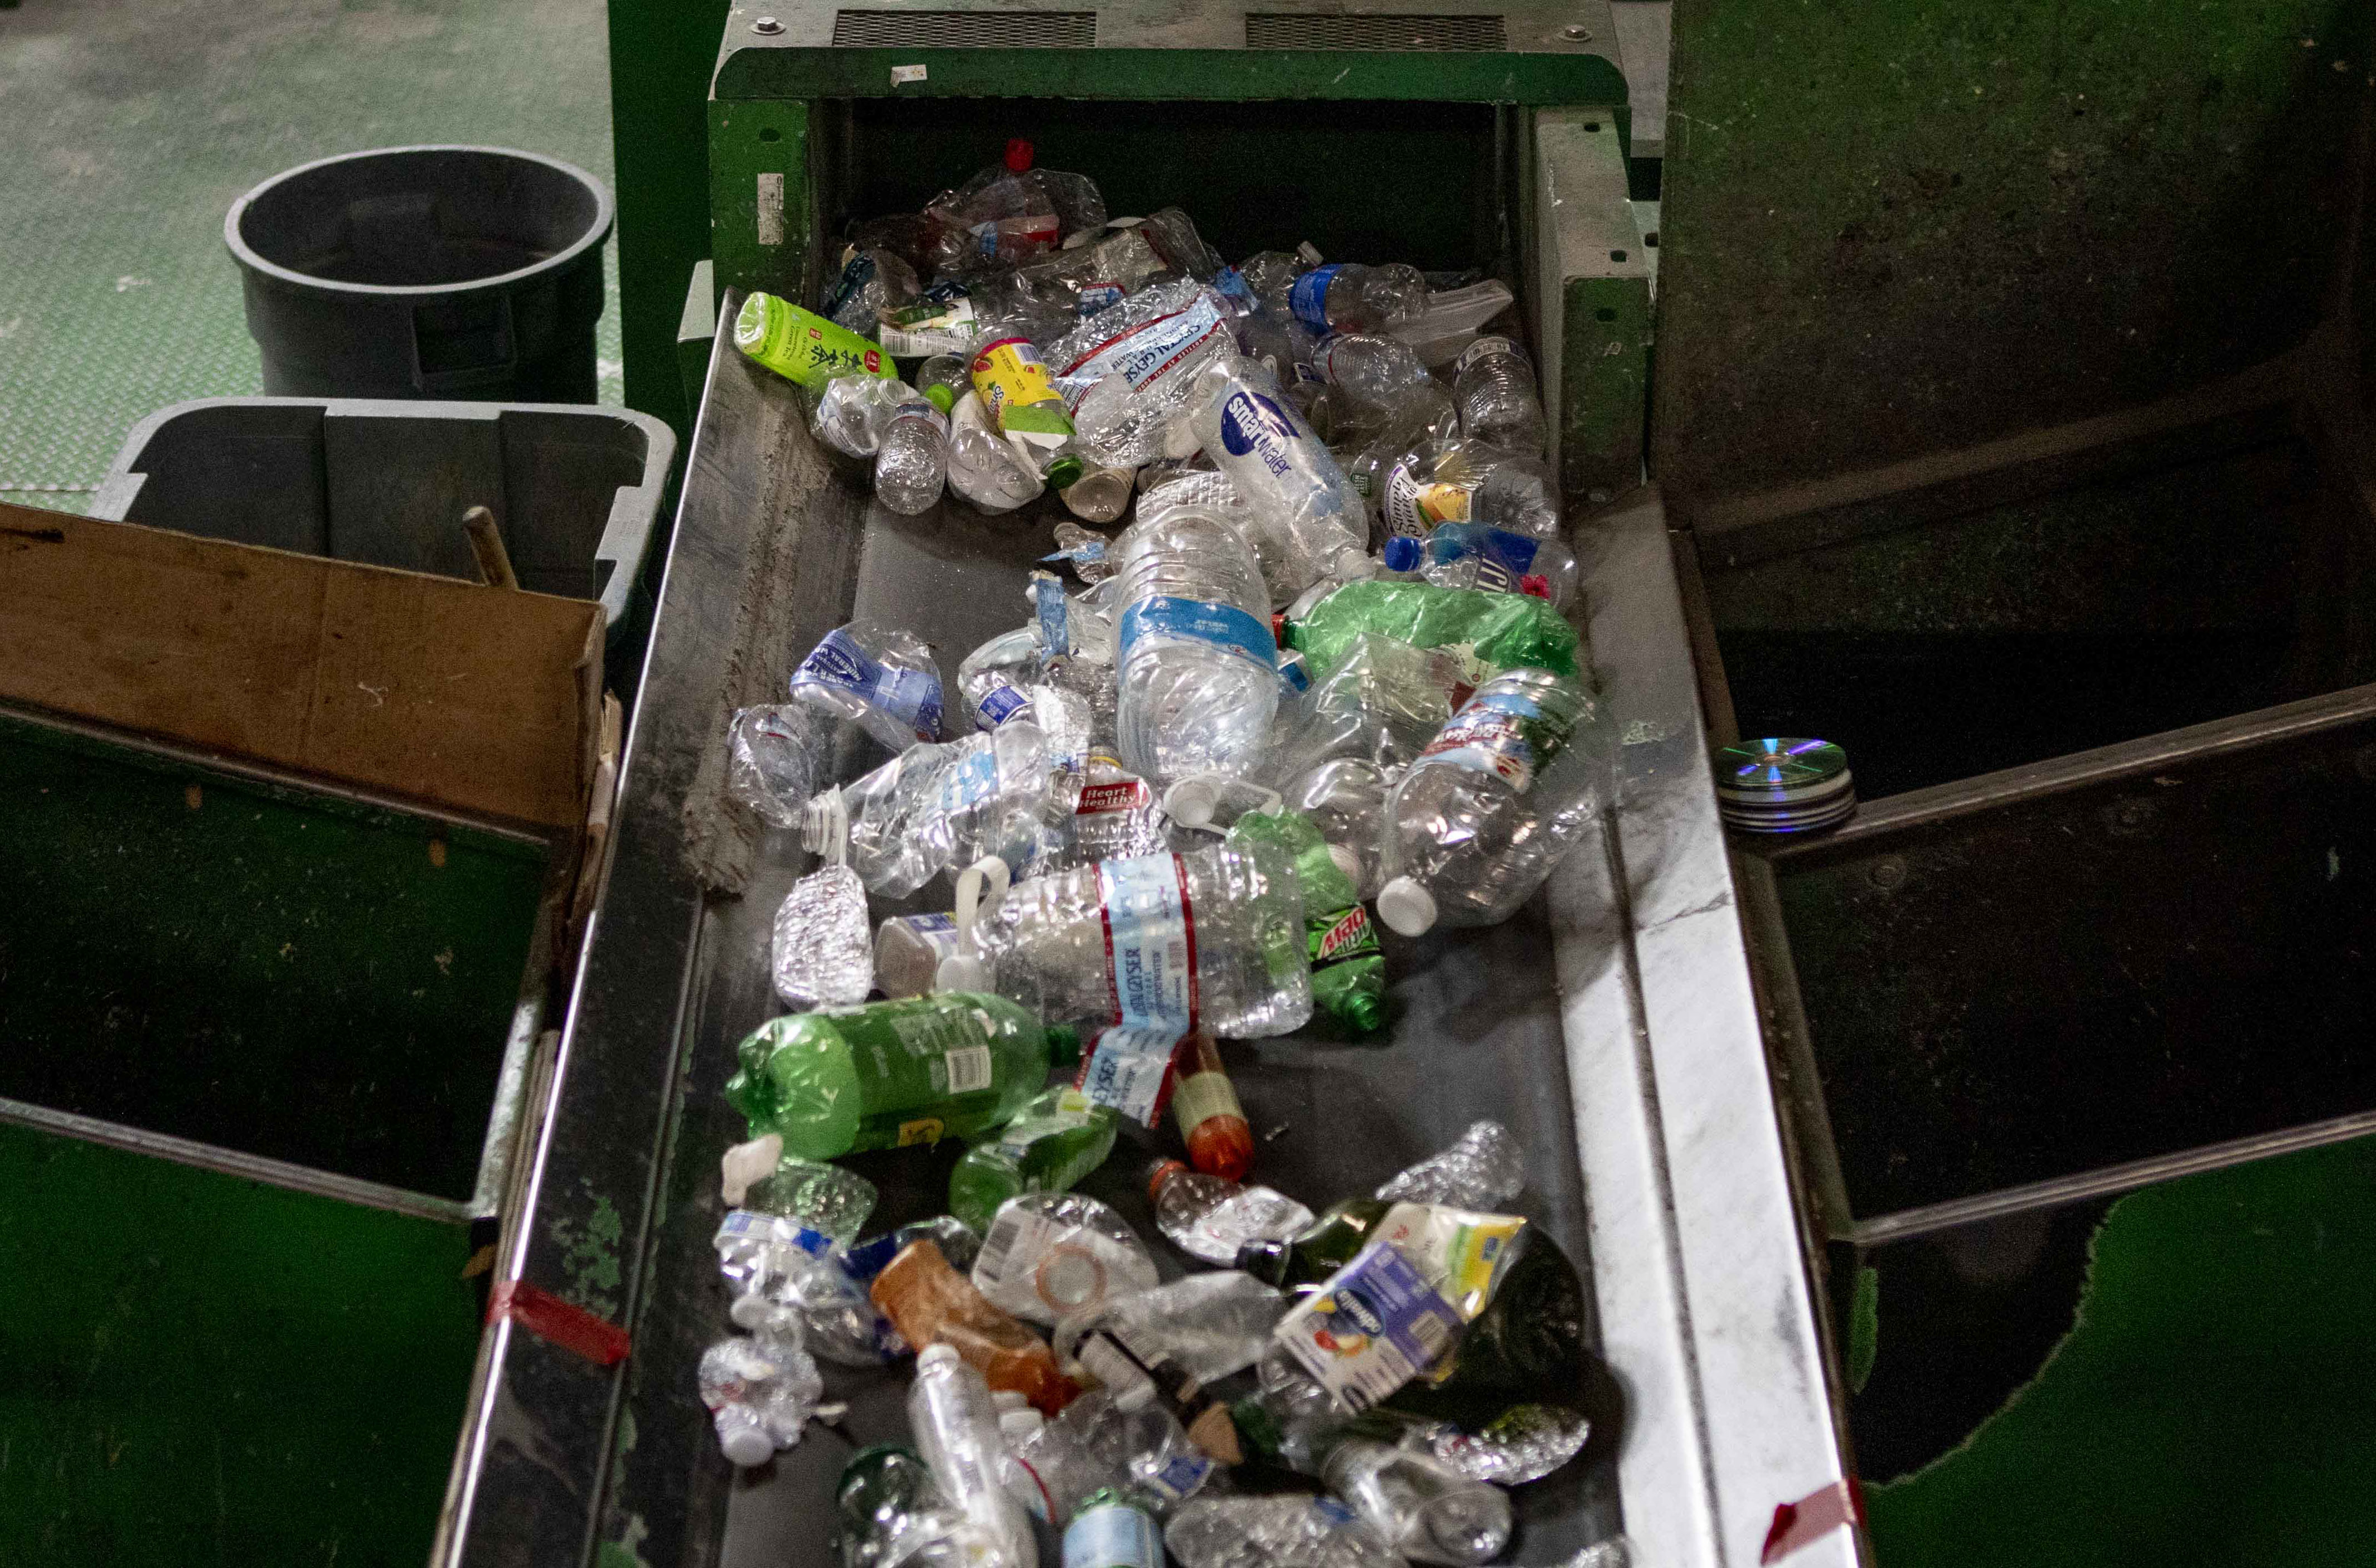 Plastic bottles on a conveyor belt at GreenWaste Recovery's facility in San Jose on July 29, 2019. Photo by Anne Wernikoff for CalMatters.